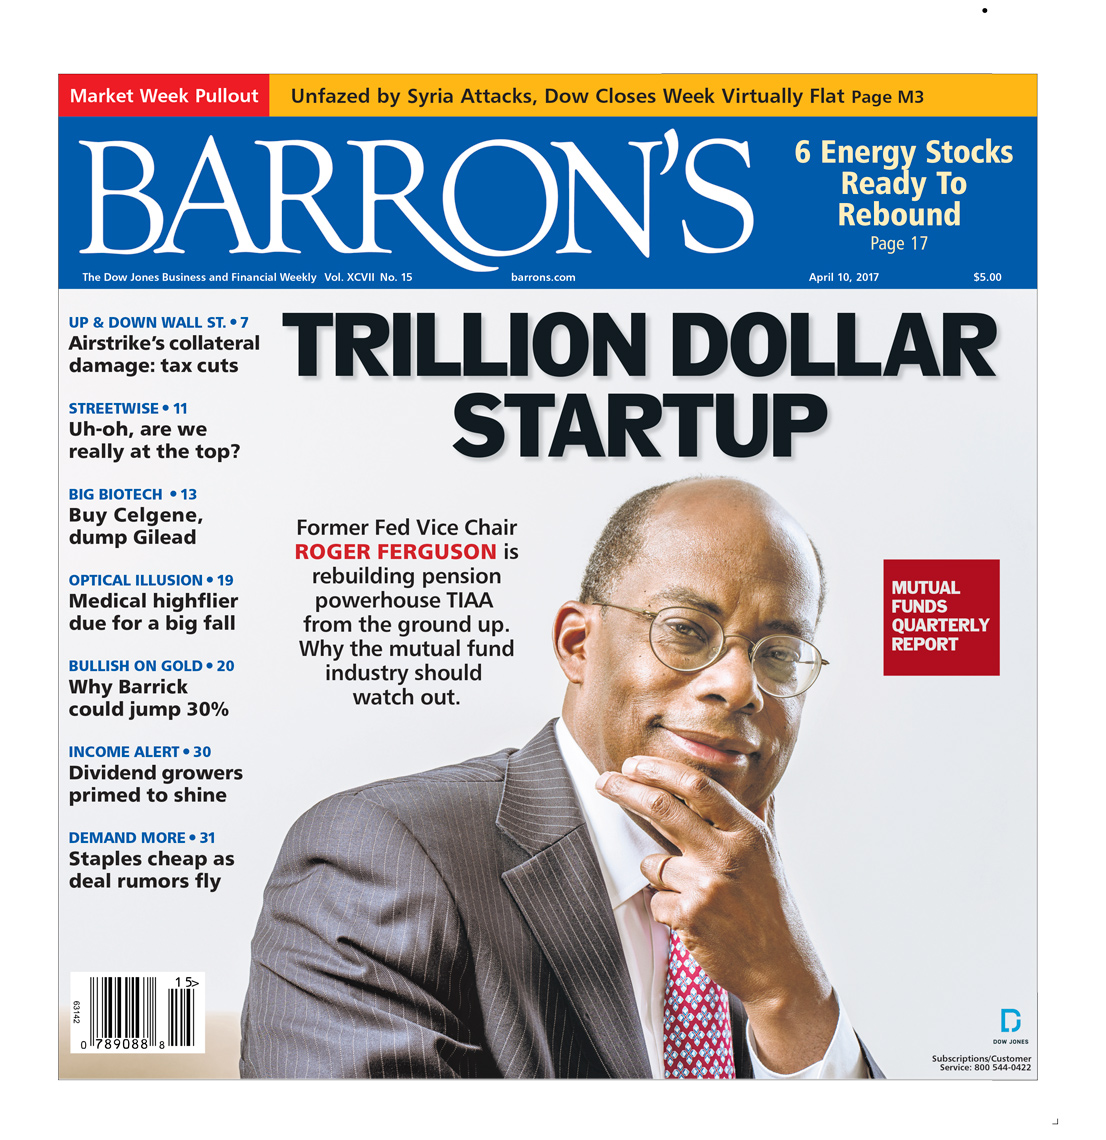 editorial-barrons-tiaa-roger-ferguson-cover